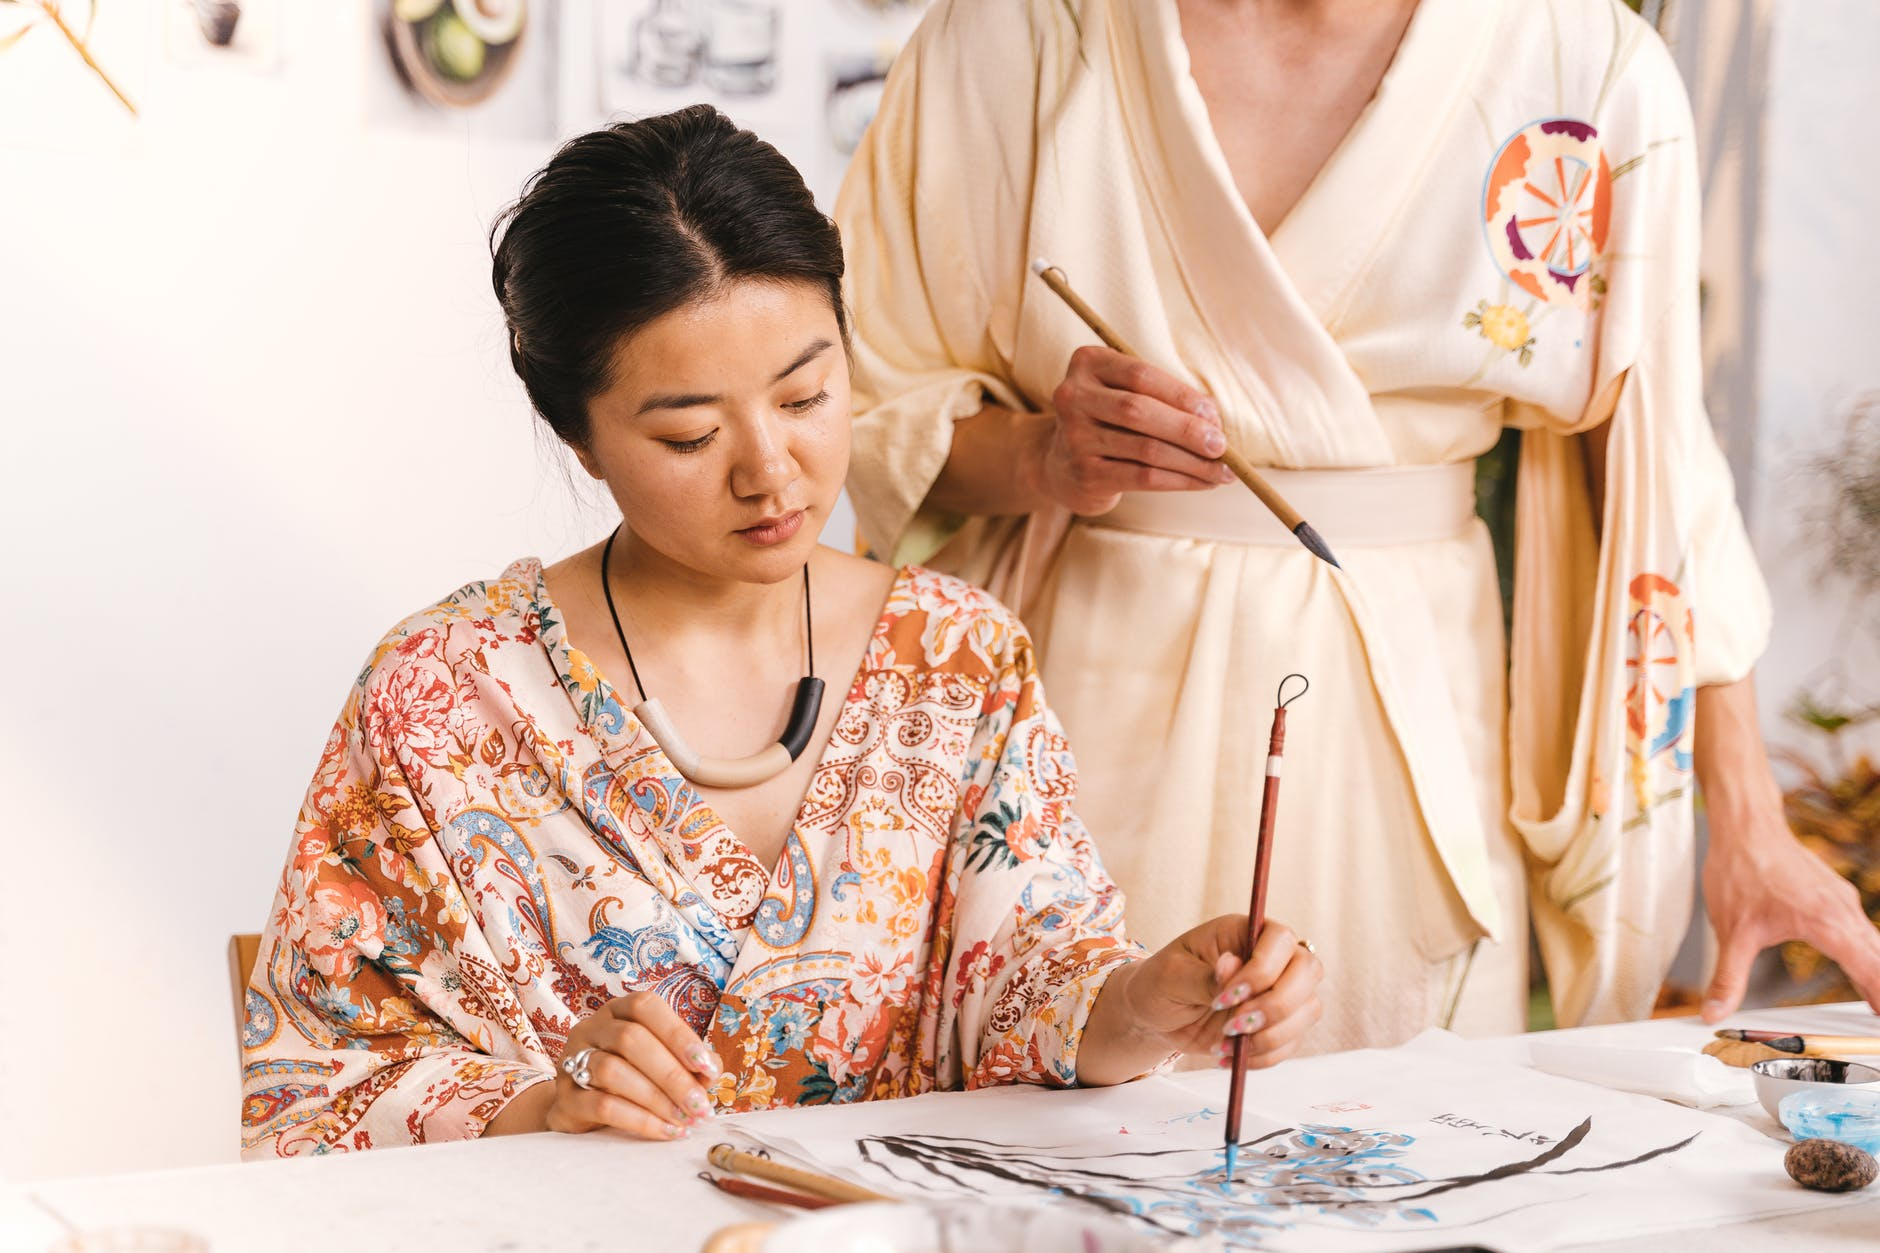 a woman doing artworks